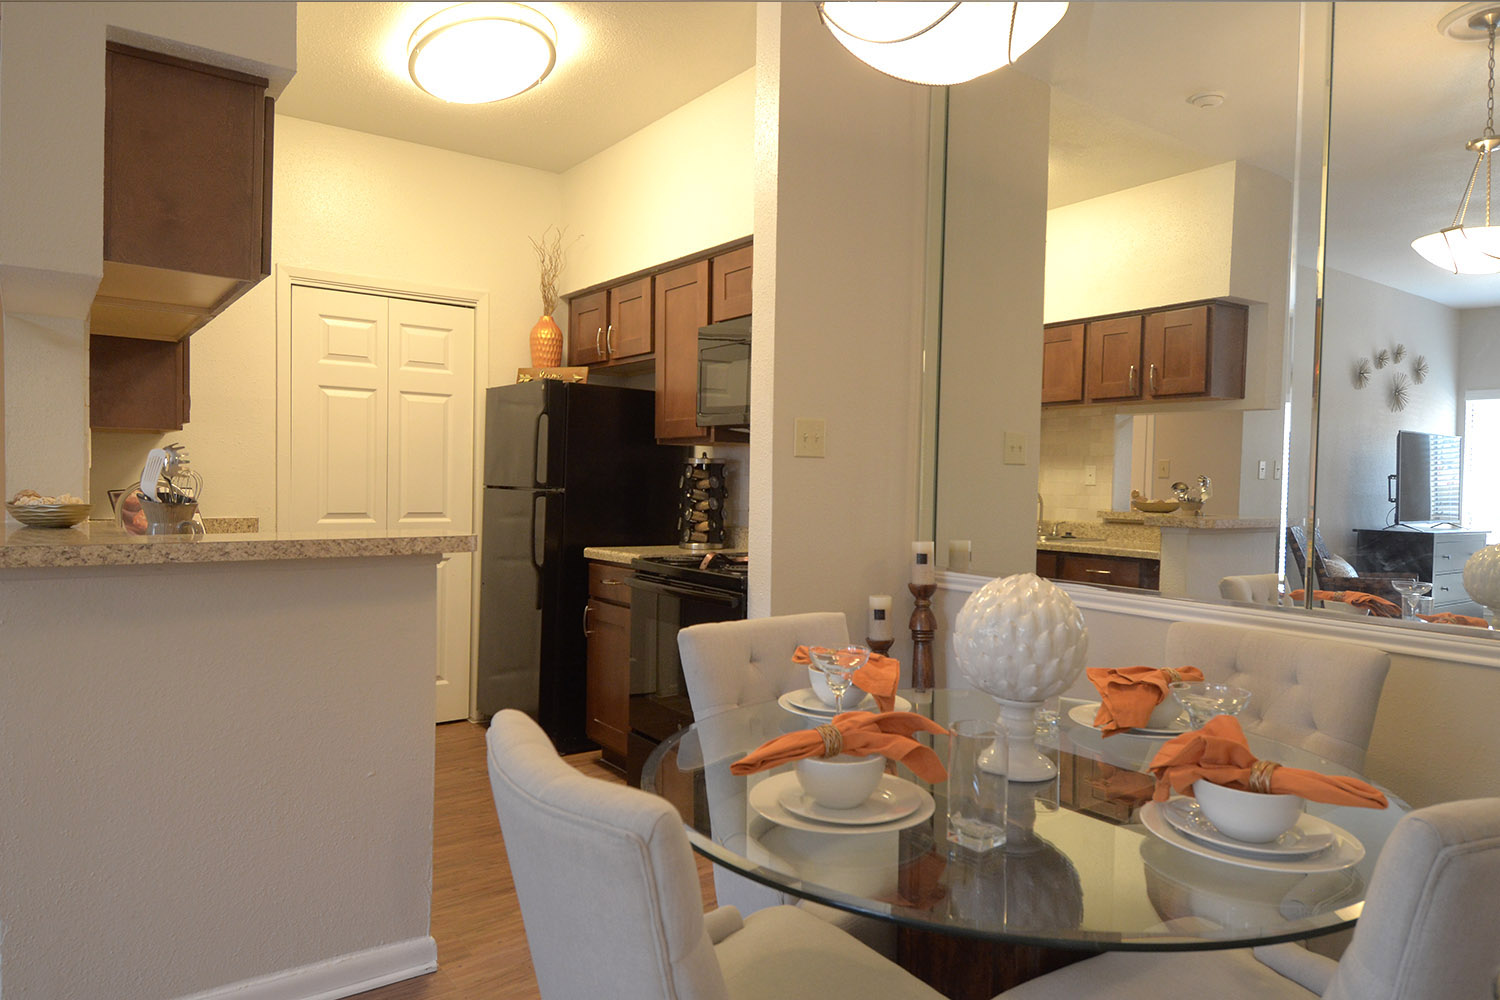 gallery 1 | Ascot Court Apartments In Jersey Village 77064